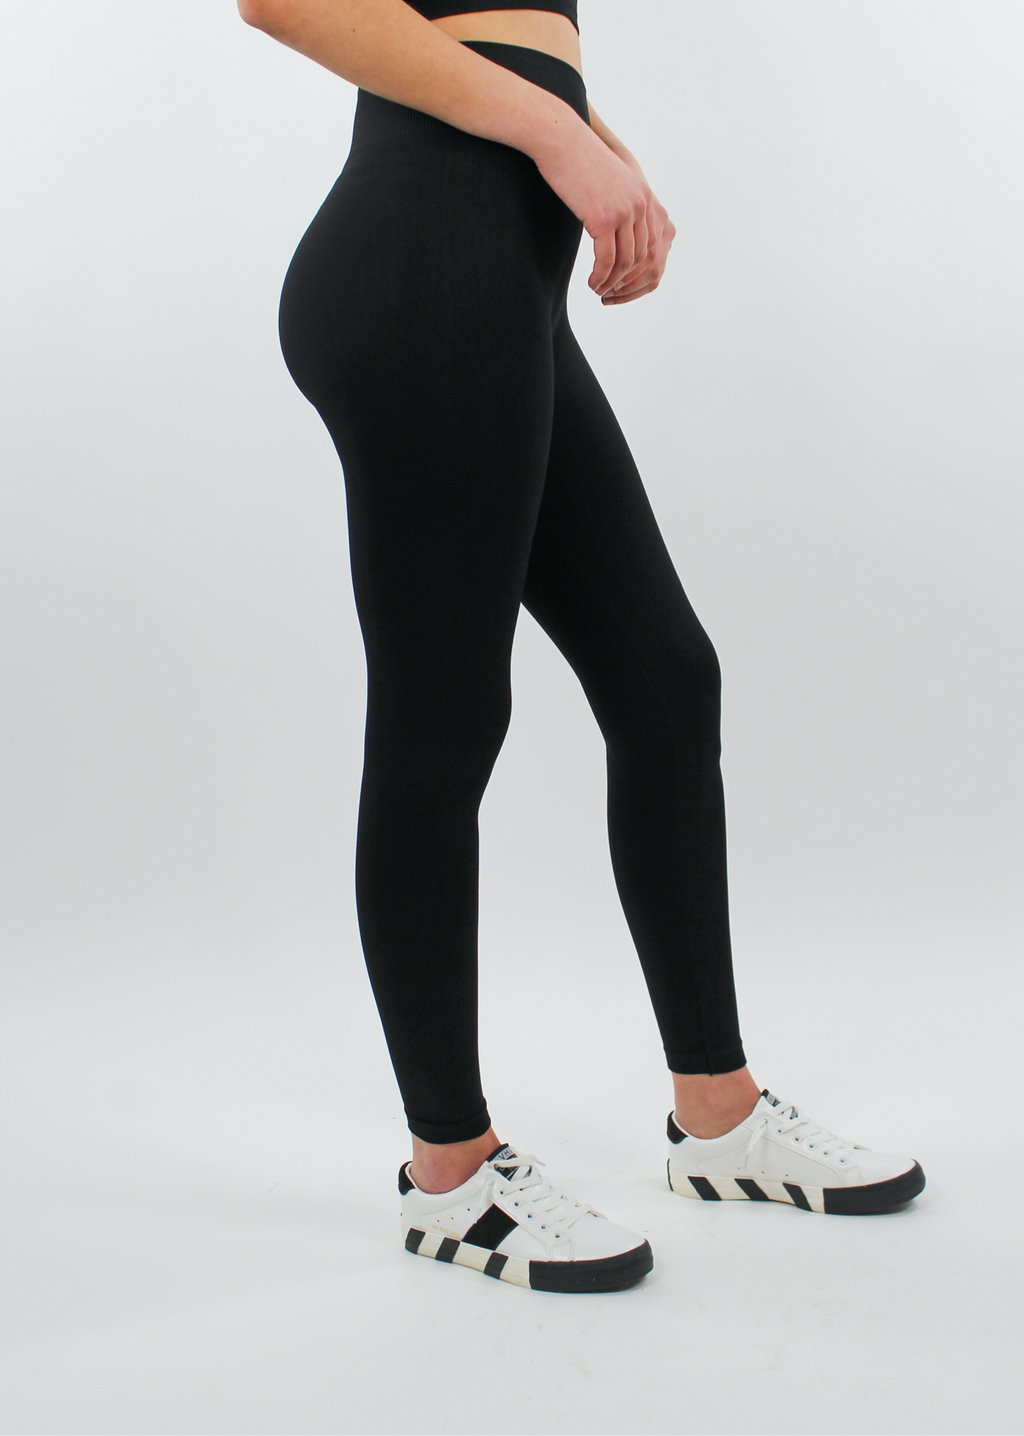 Work It Out Leggings ★ Black - Rock N Rags